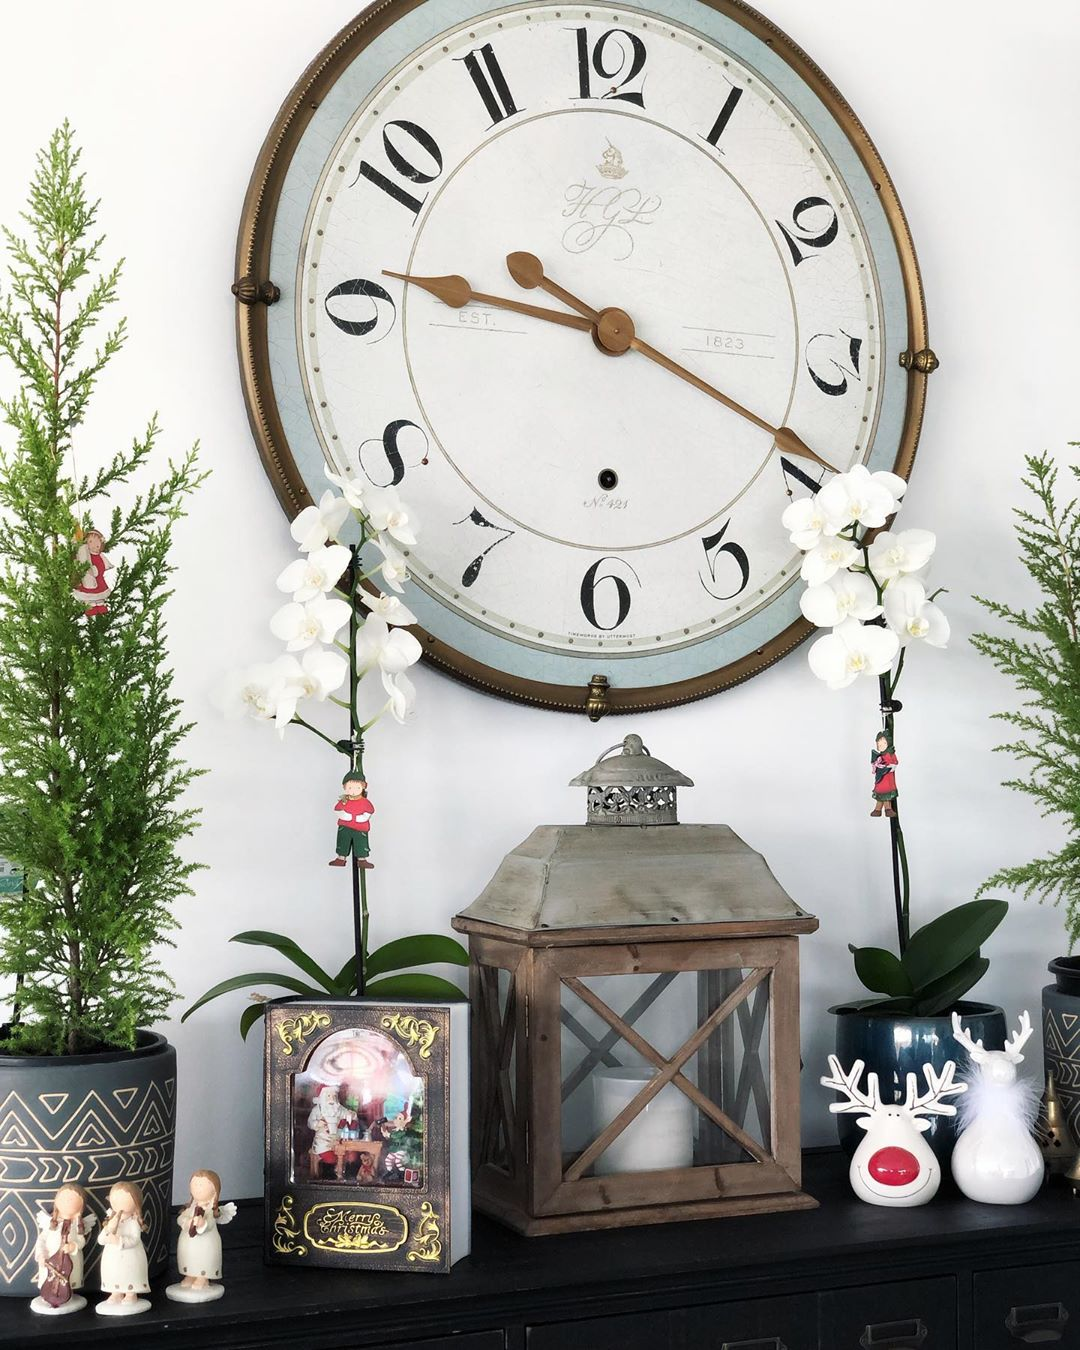 Christmas Tree for Christmas Home Decor (11)